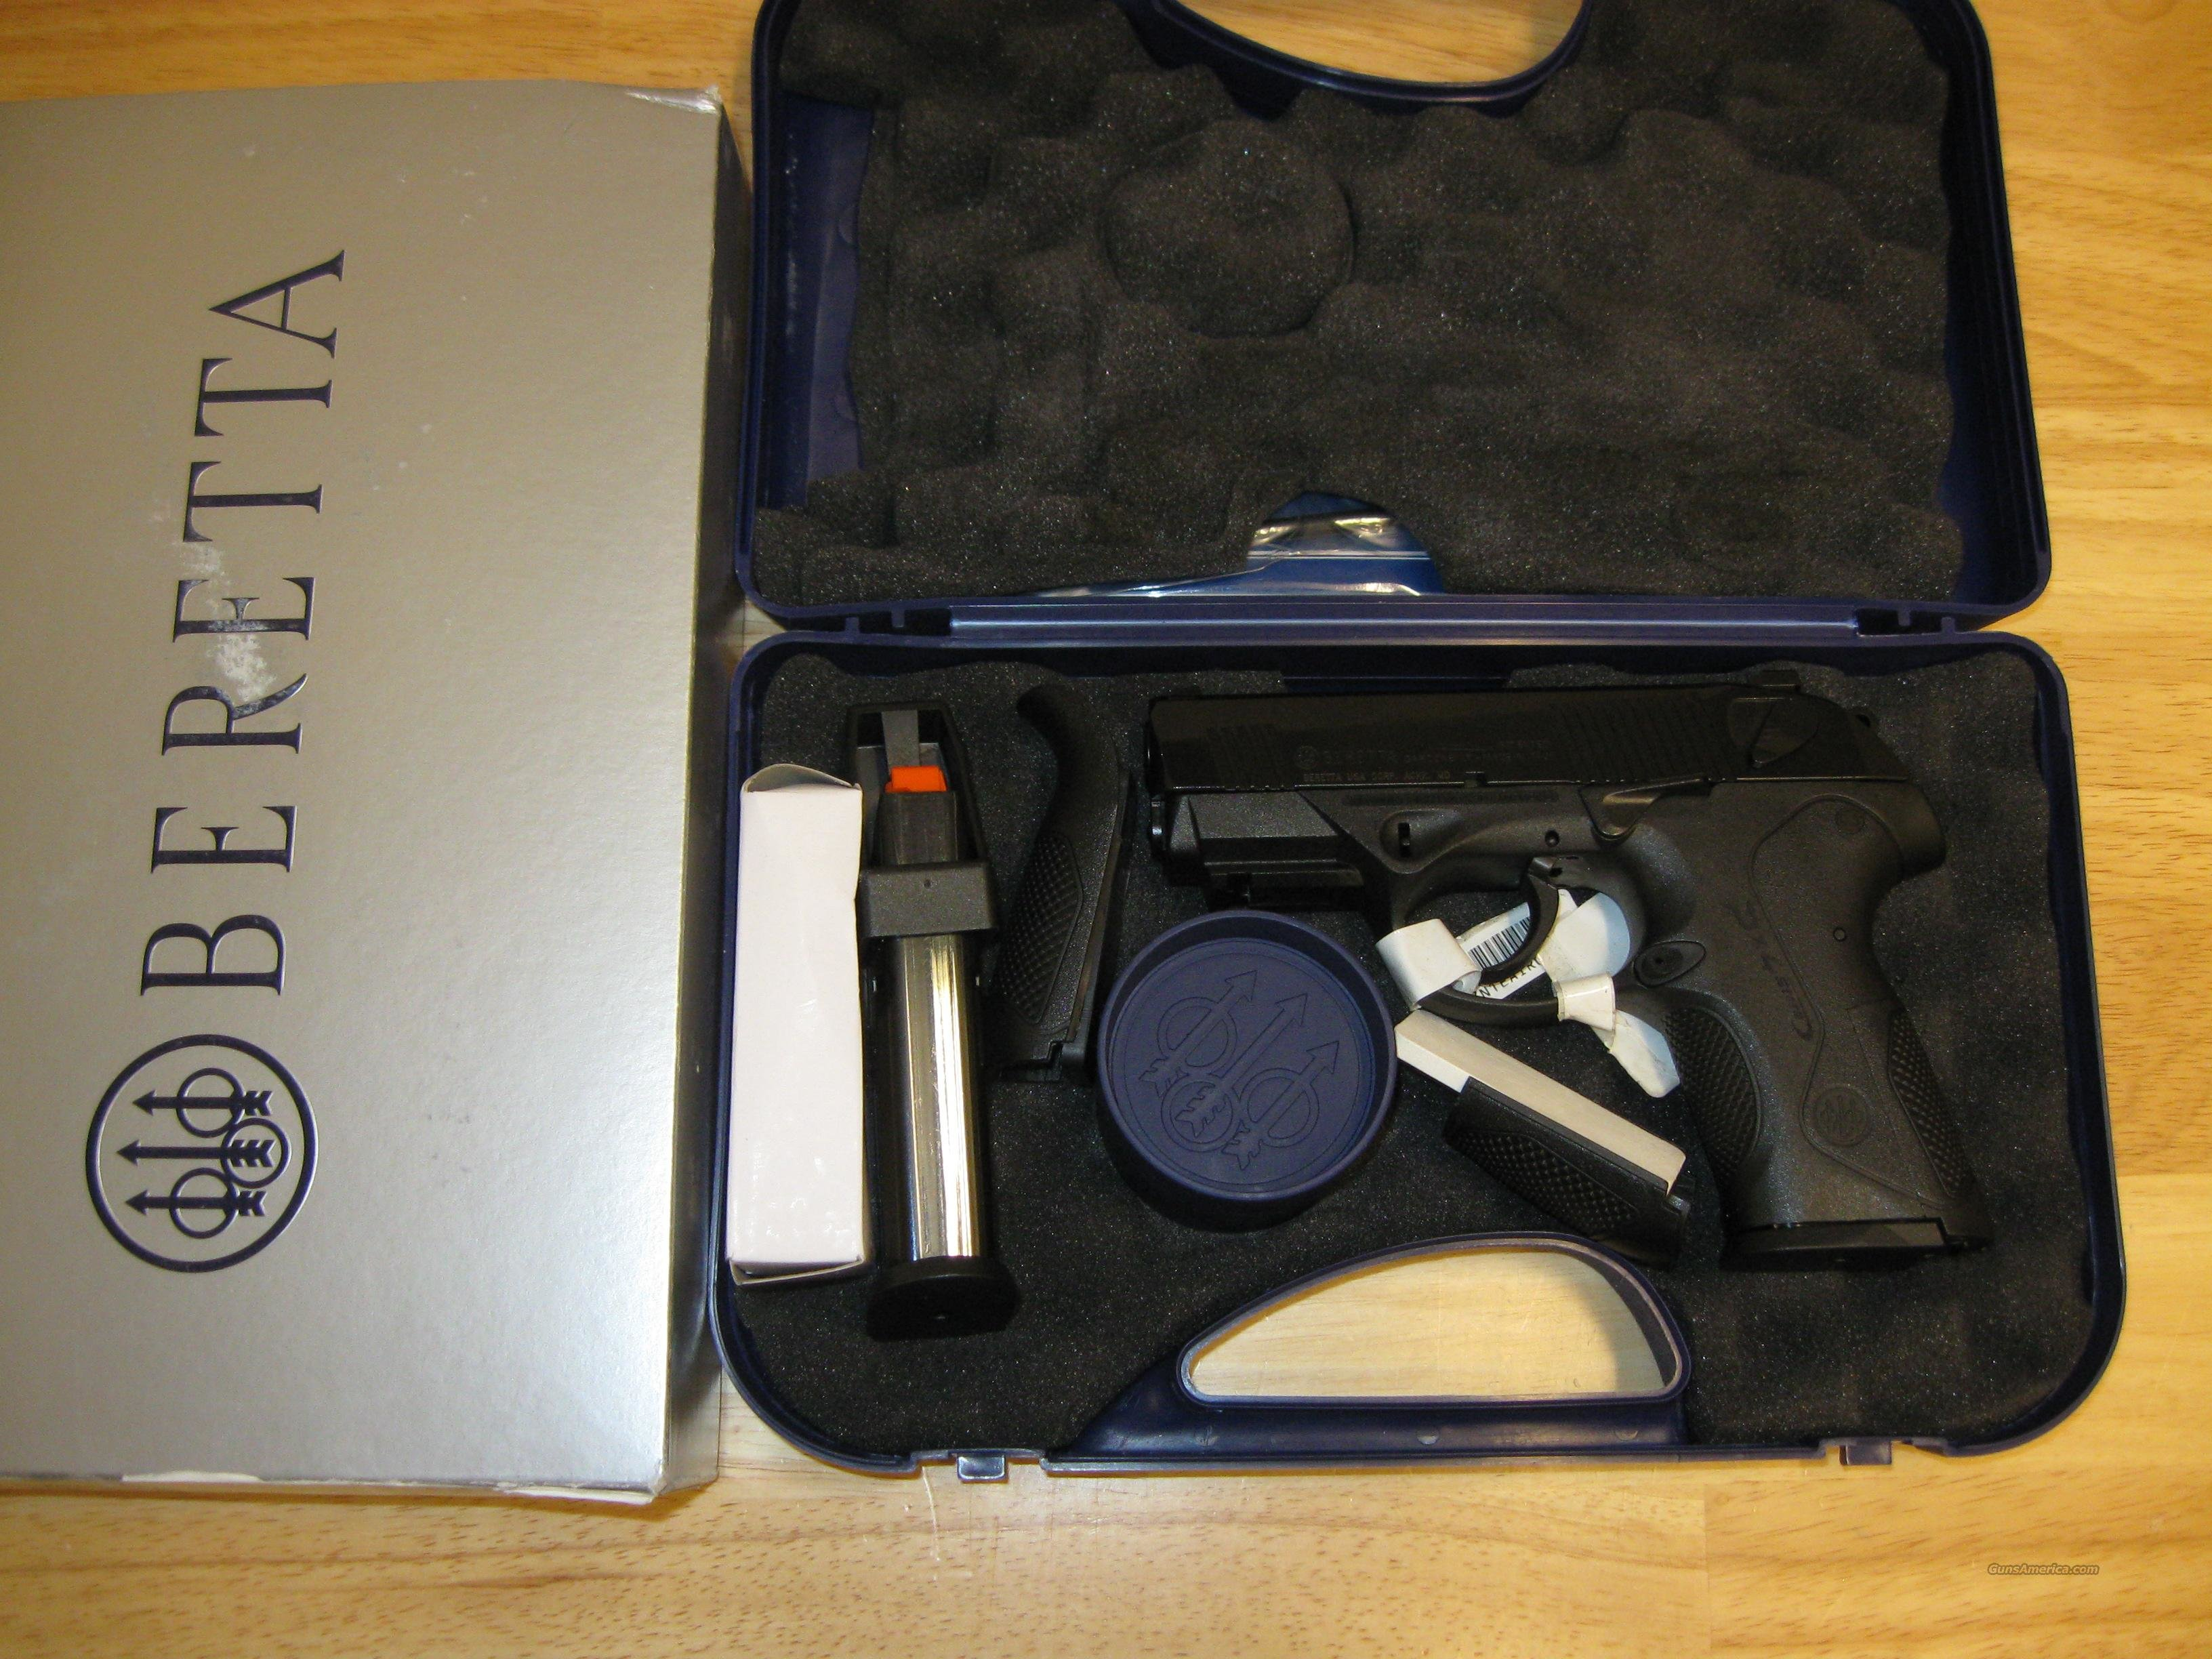 "Beretta Px4 Storm Double/Single Action Compact Pistol JXC9F21, 9mm, 3.2"", Polymer Grip, Black Matte Finish, 15 Rd  Guns > Pistols > Beretta Pistols > Polymer Frame"